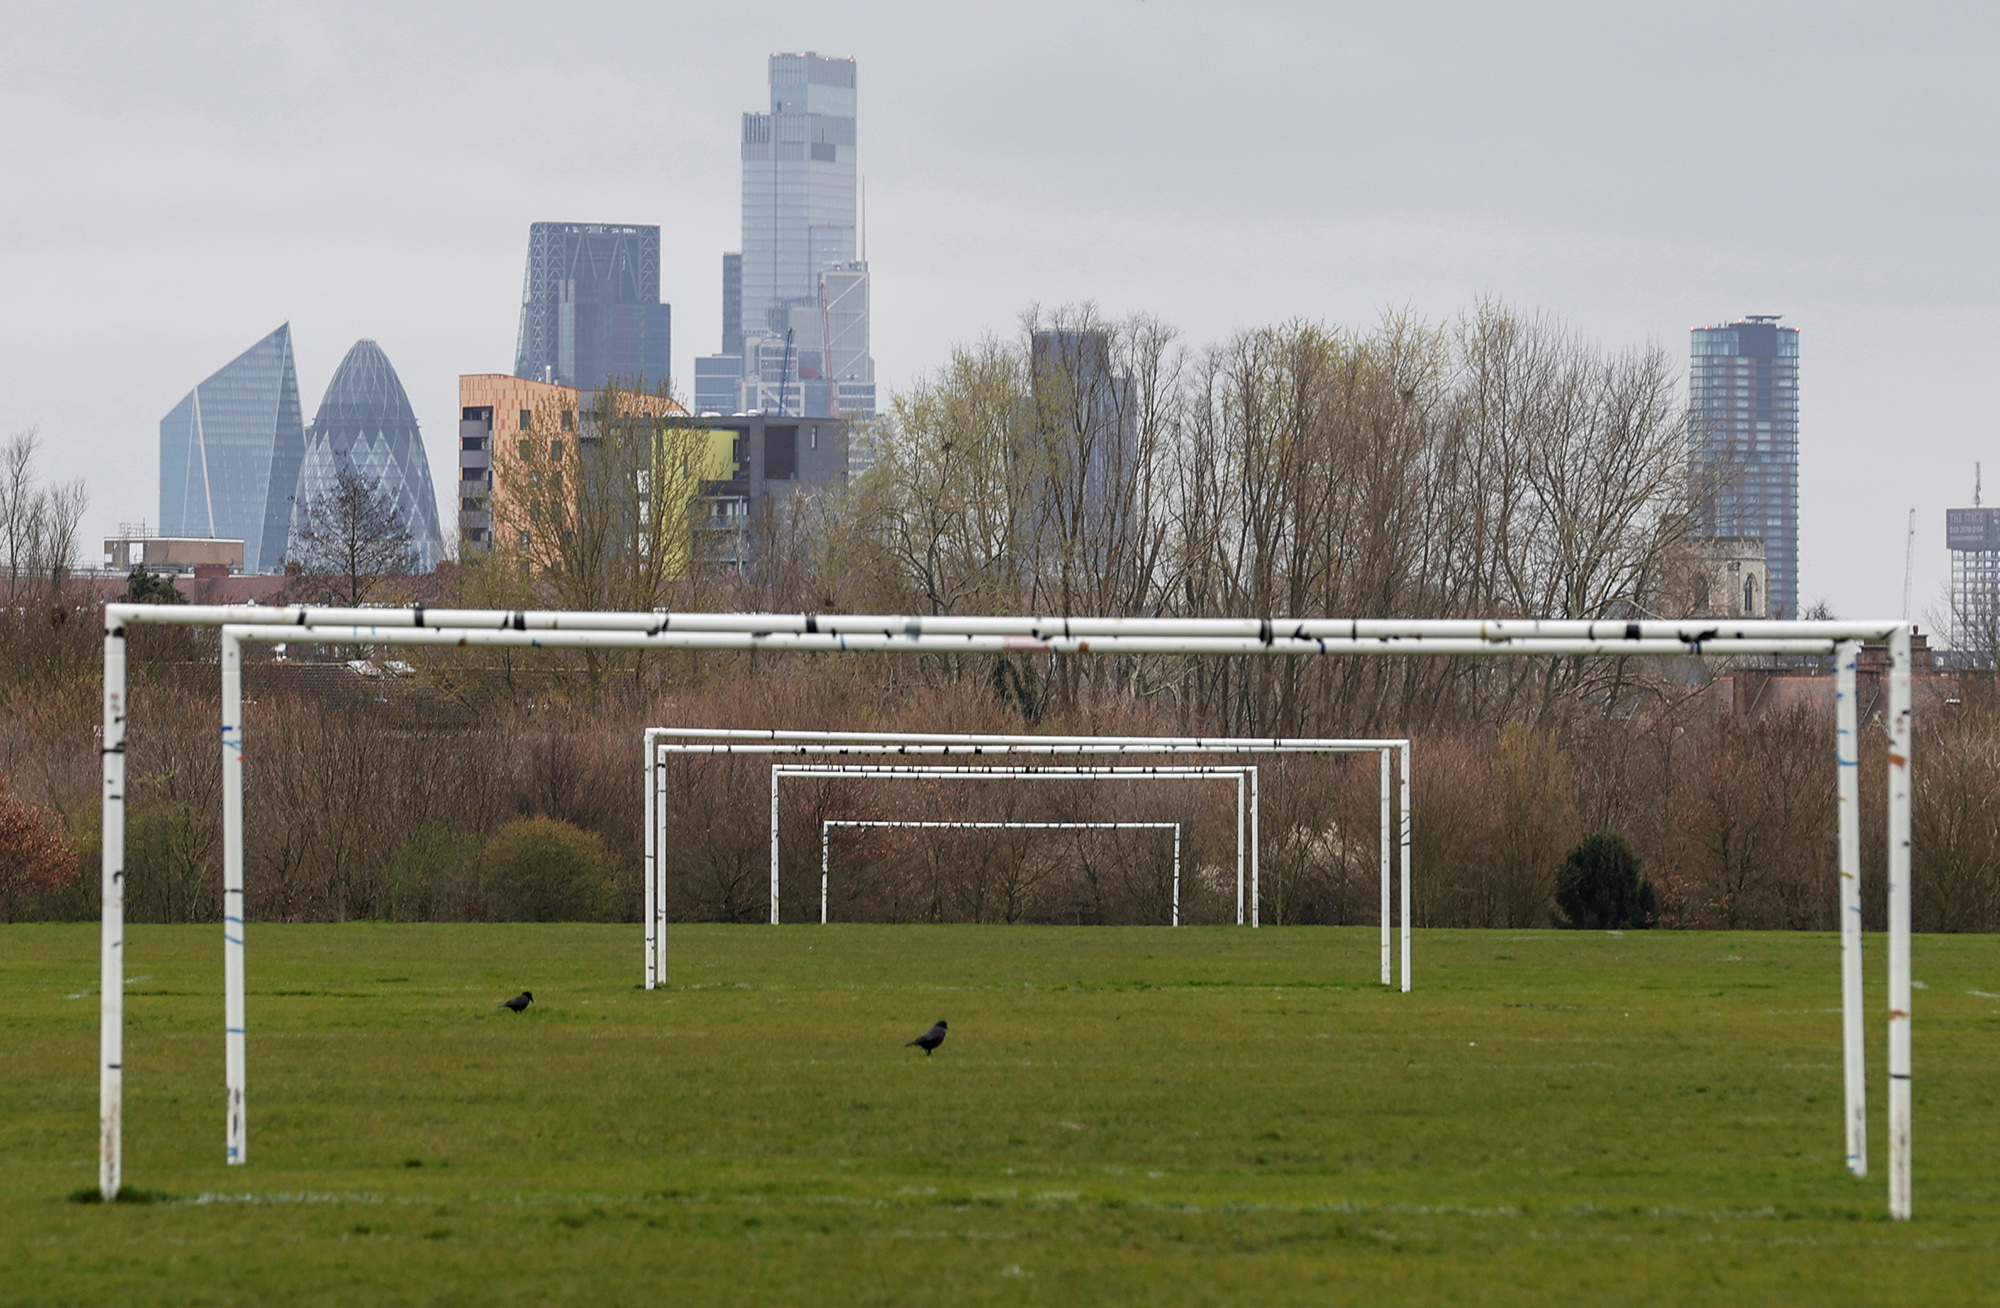 Empty pitches are seen on Hackney Marshes in London, Britain, March 15, 2020. REUTERS/Eddie Keogh TPX IMAGES OF THE DAY